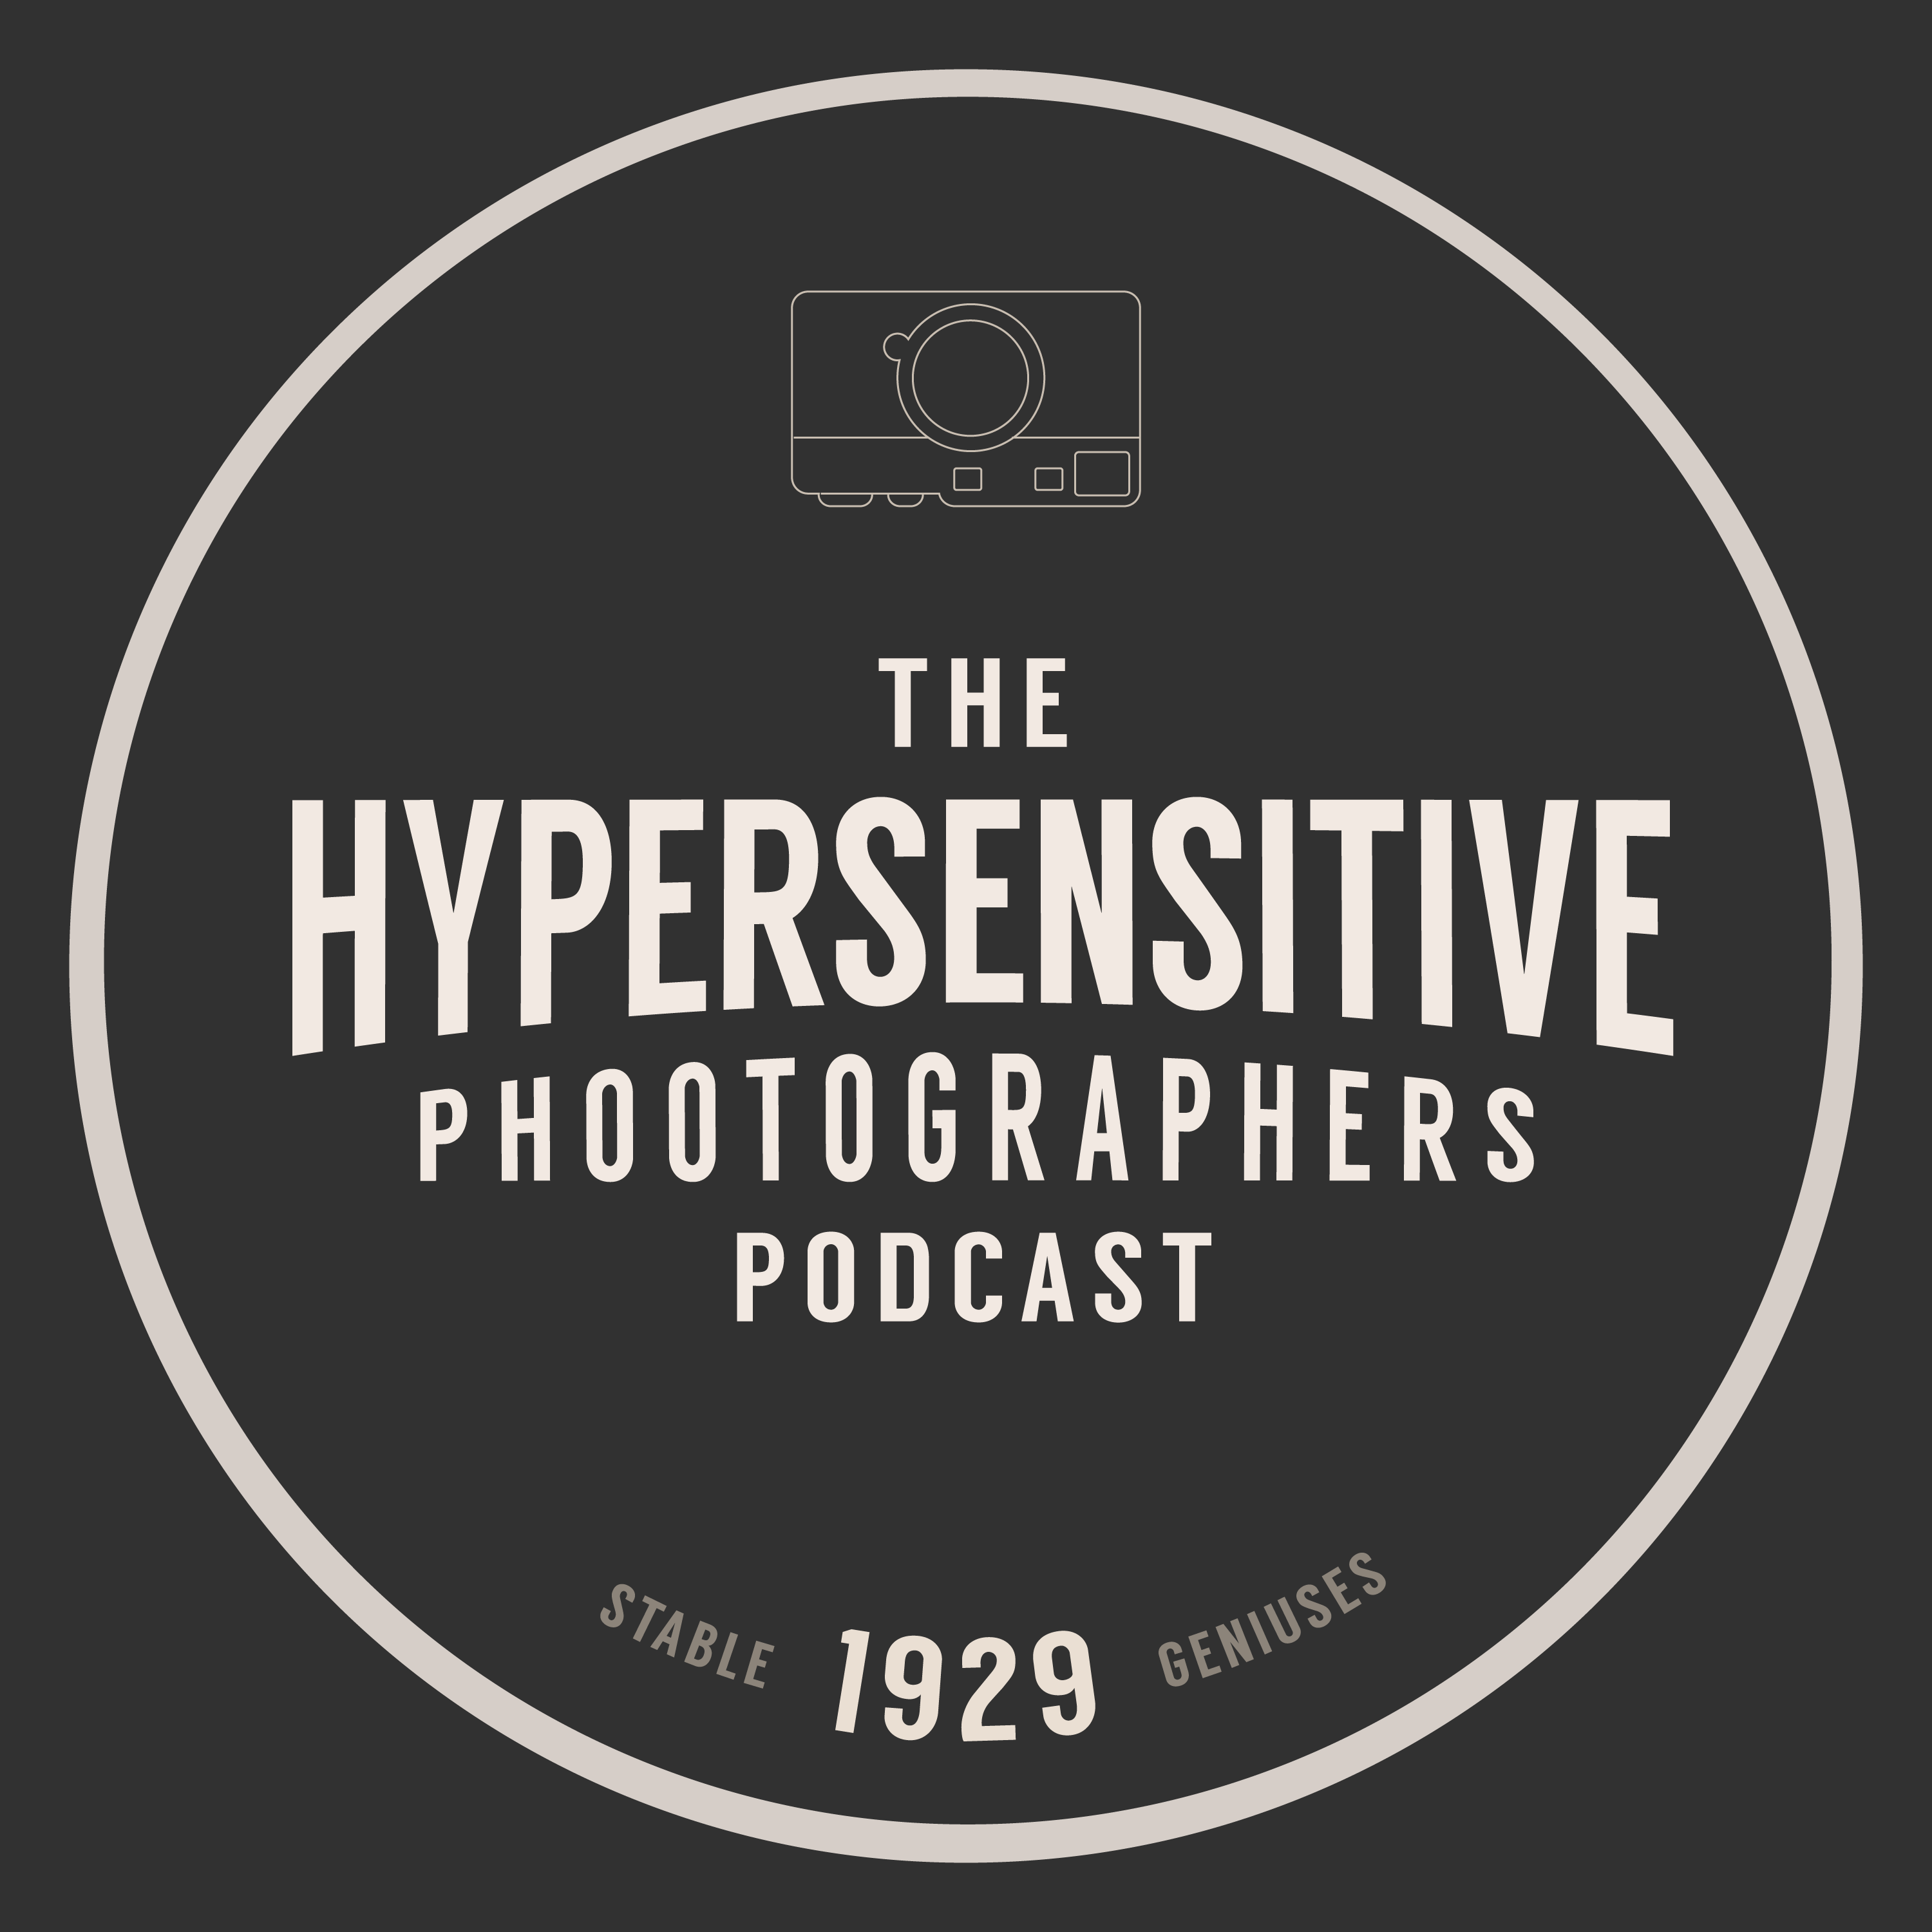 The Hypersensitive Photographers Podcast Episode 1